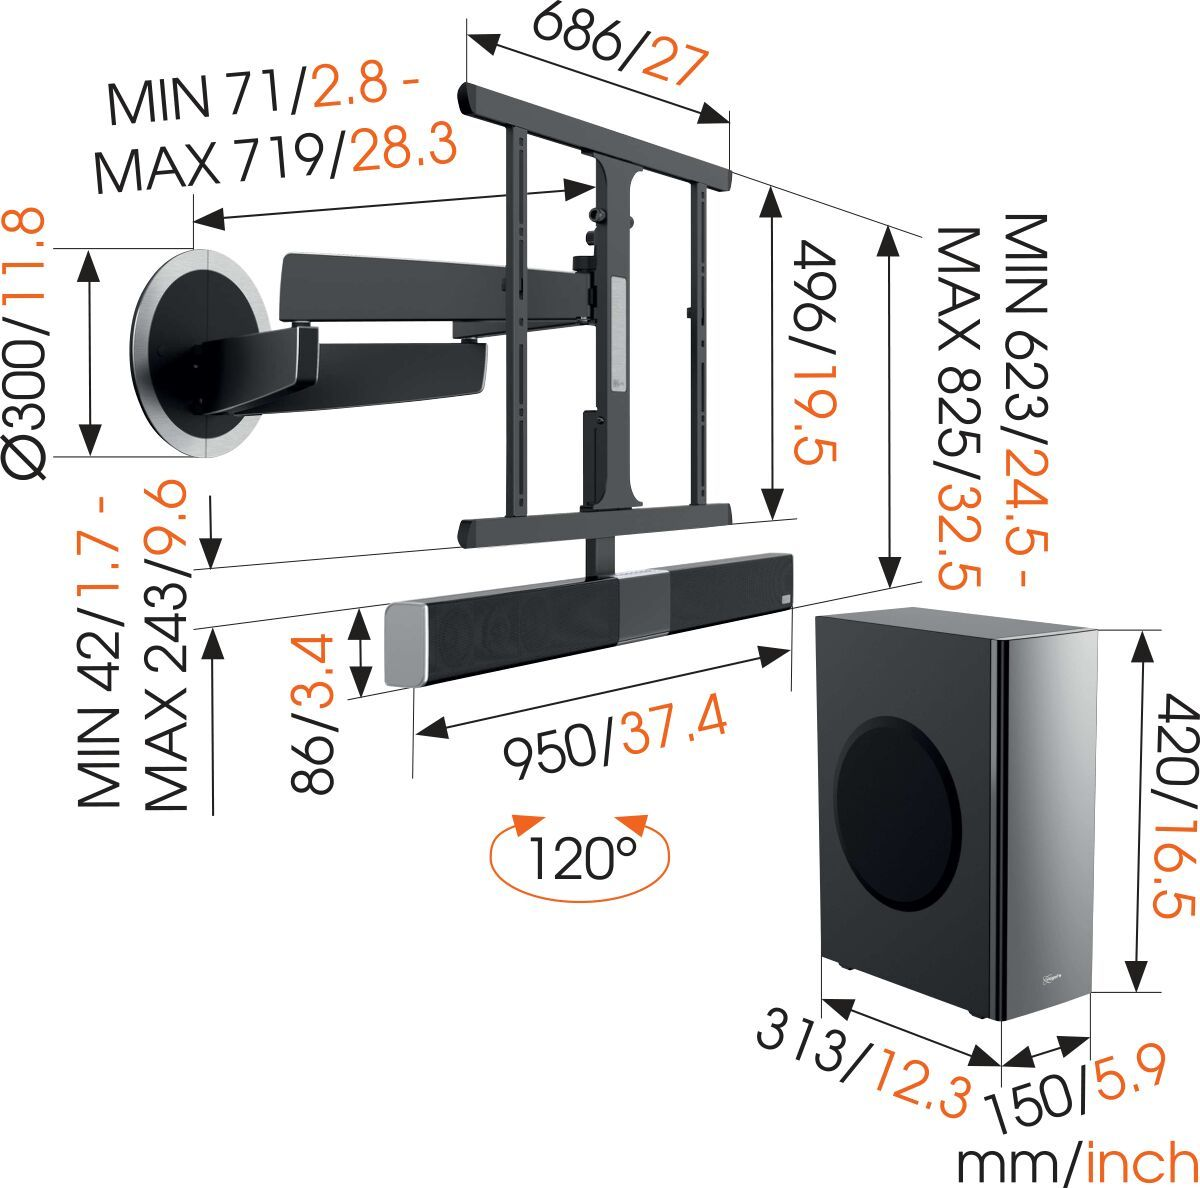 Vogel's SoundMount (NEXT 8365) Full-Motion TV Wall Mount with Integrated Sound 40 65 30 Motion (up to 120°) Dimensions